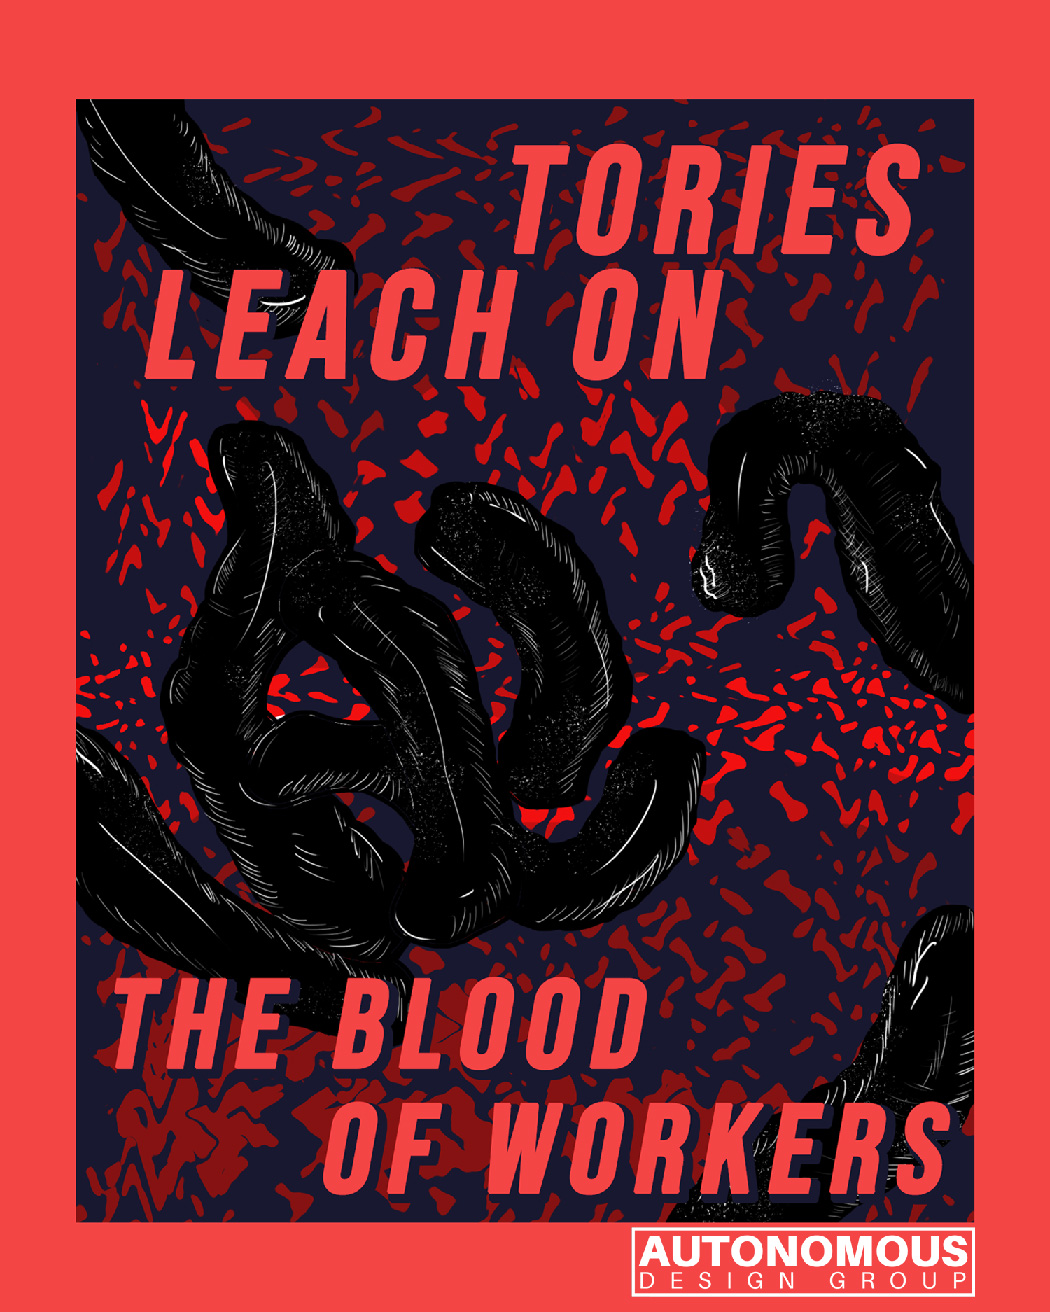 tories leech on the blood of workers